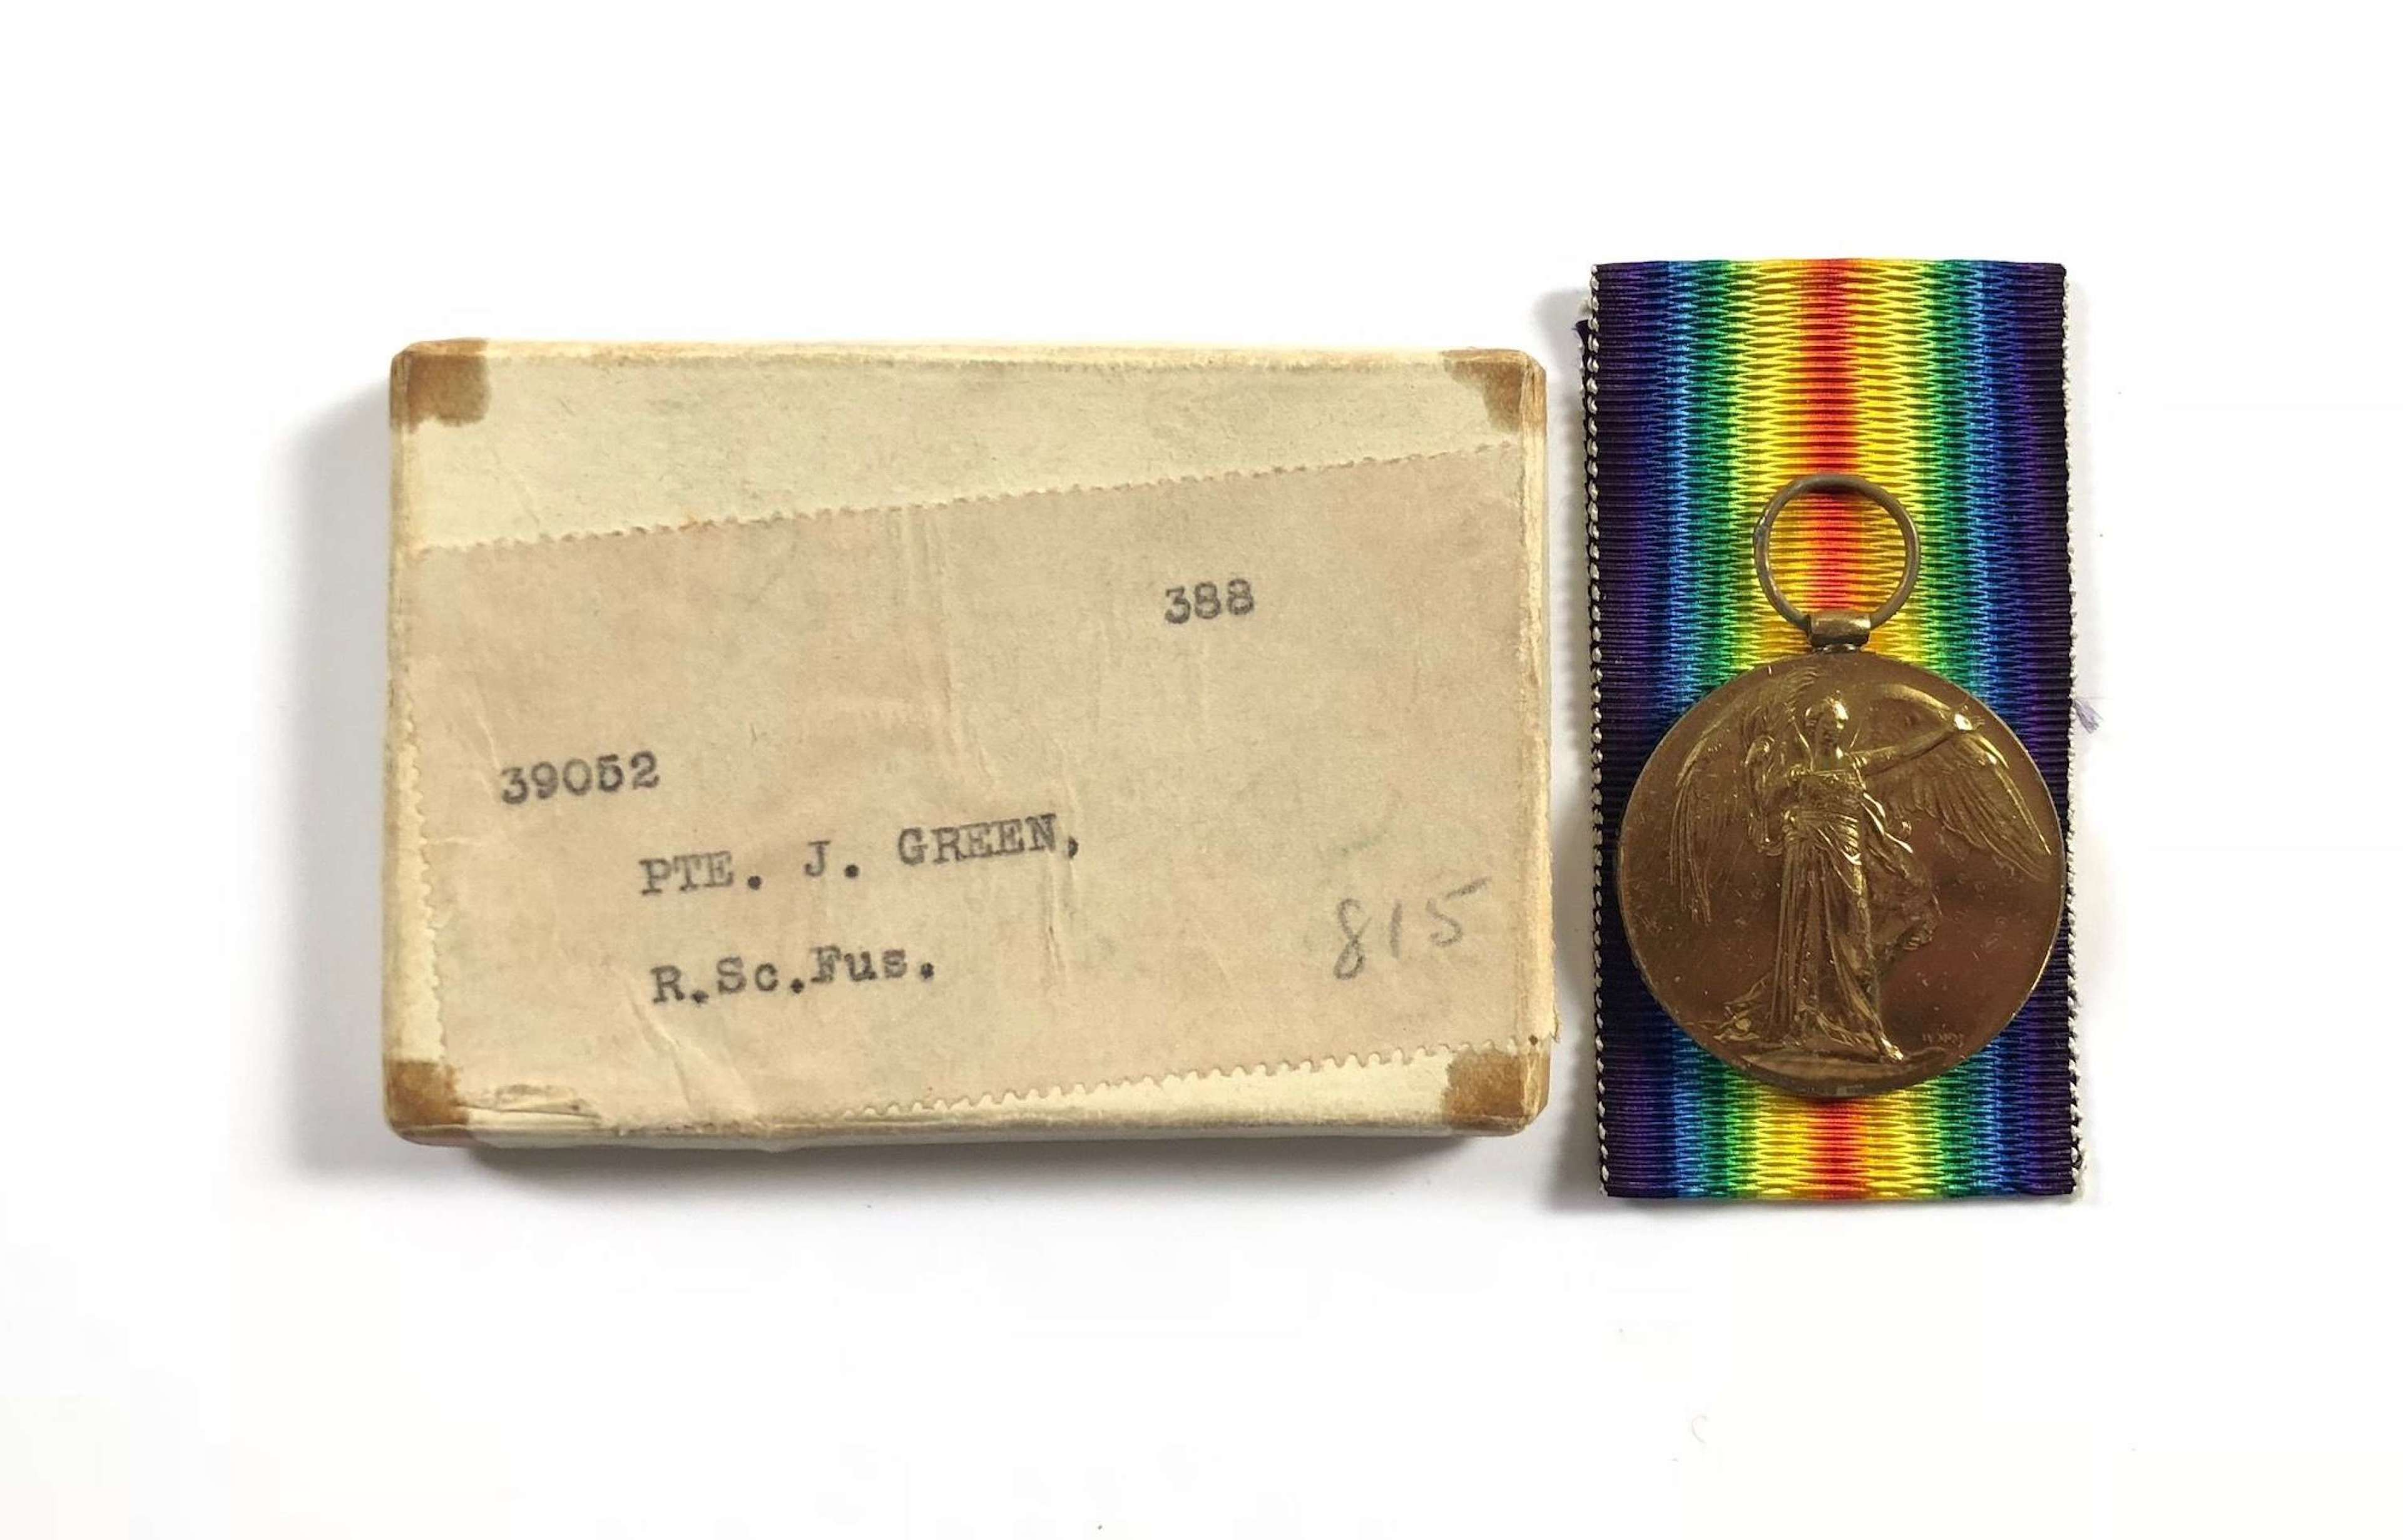 WW1 Royal Scots Fusiliers Victory Medal and Card Box.